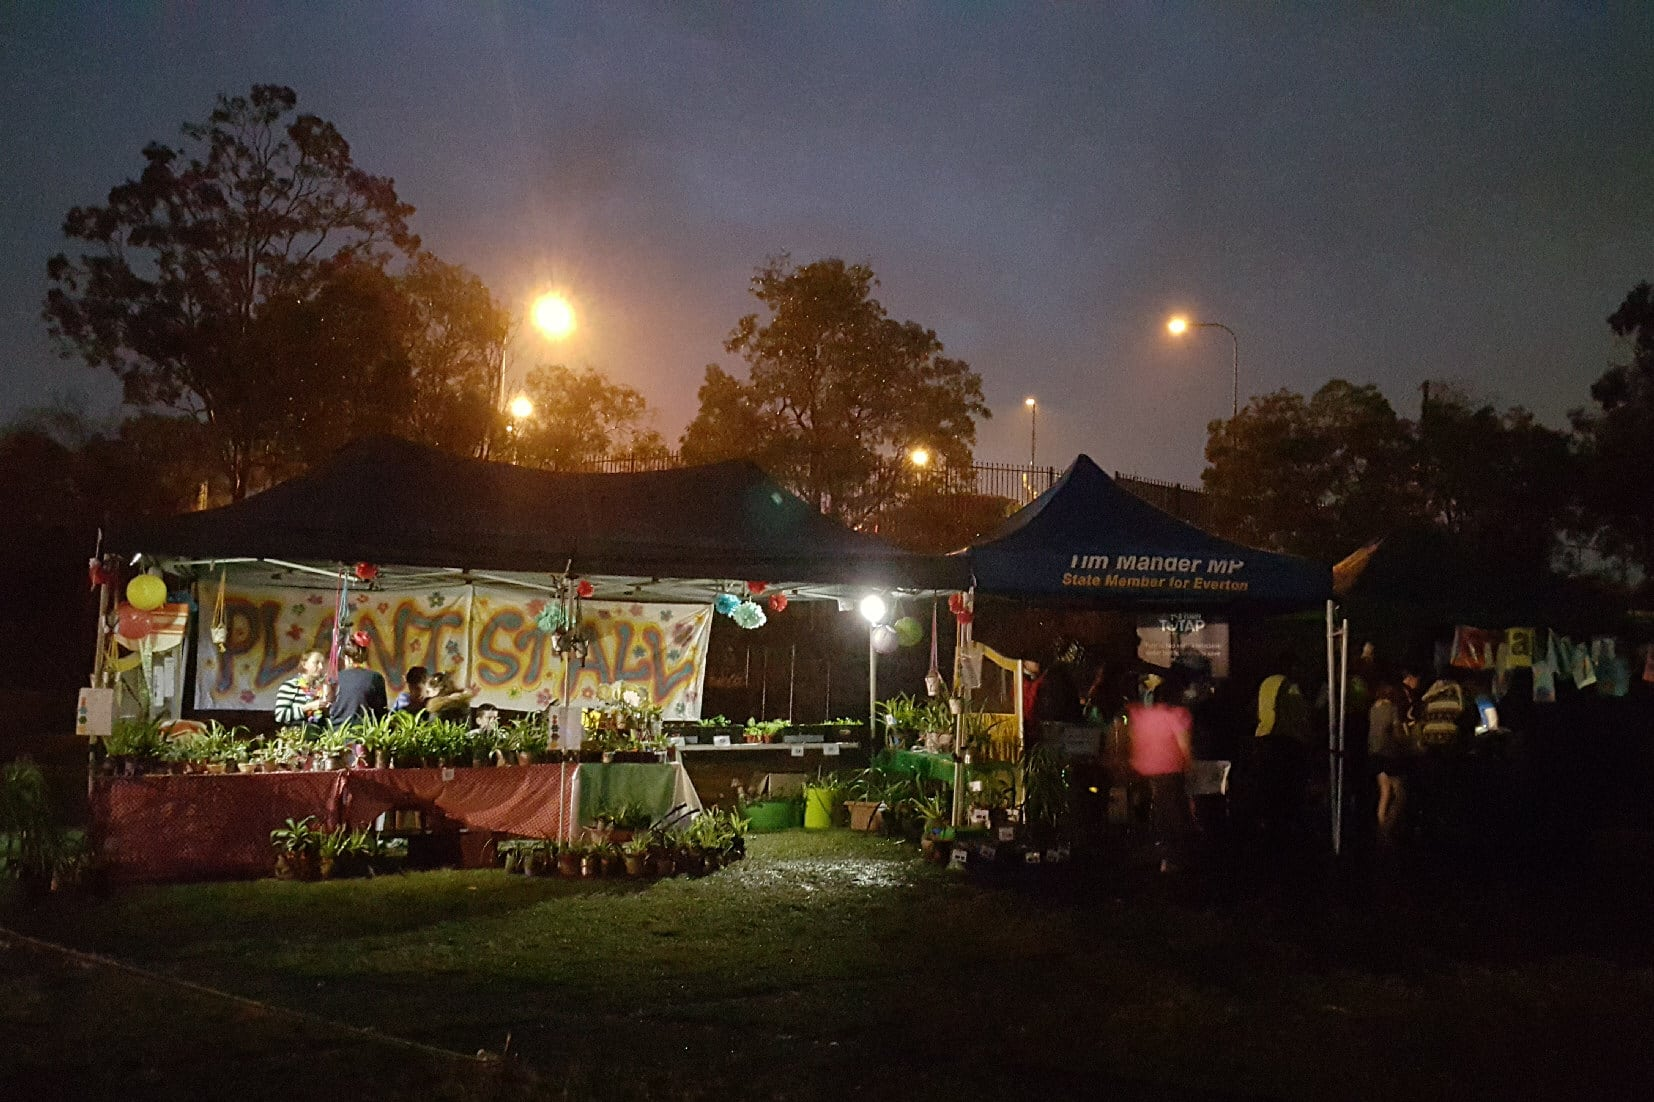 Solar Led Flood Lights With Remote Control Capricorn Blackfrog Sunny Light Gardensolar Yard Powered Lighting Buy Bright Online Today Are A Leading Supplier Of